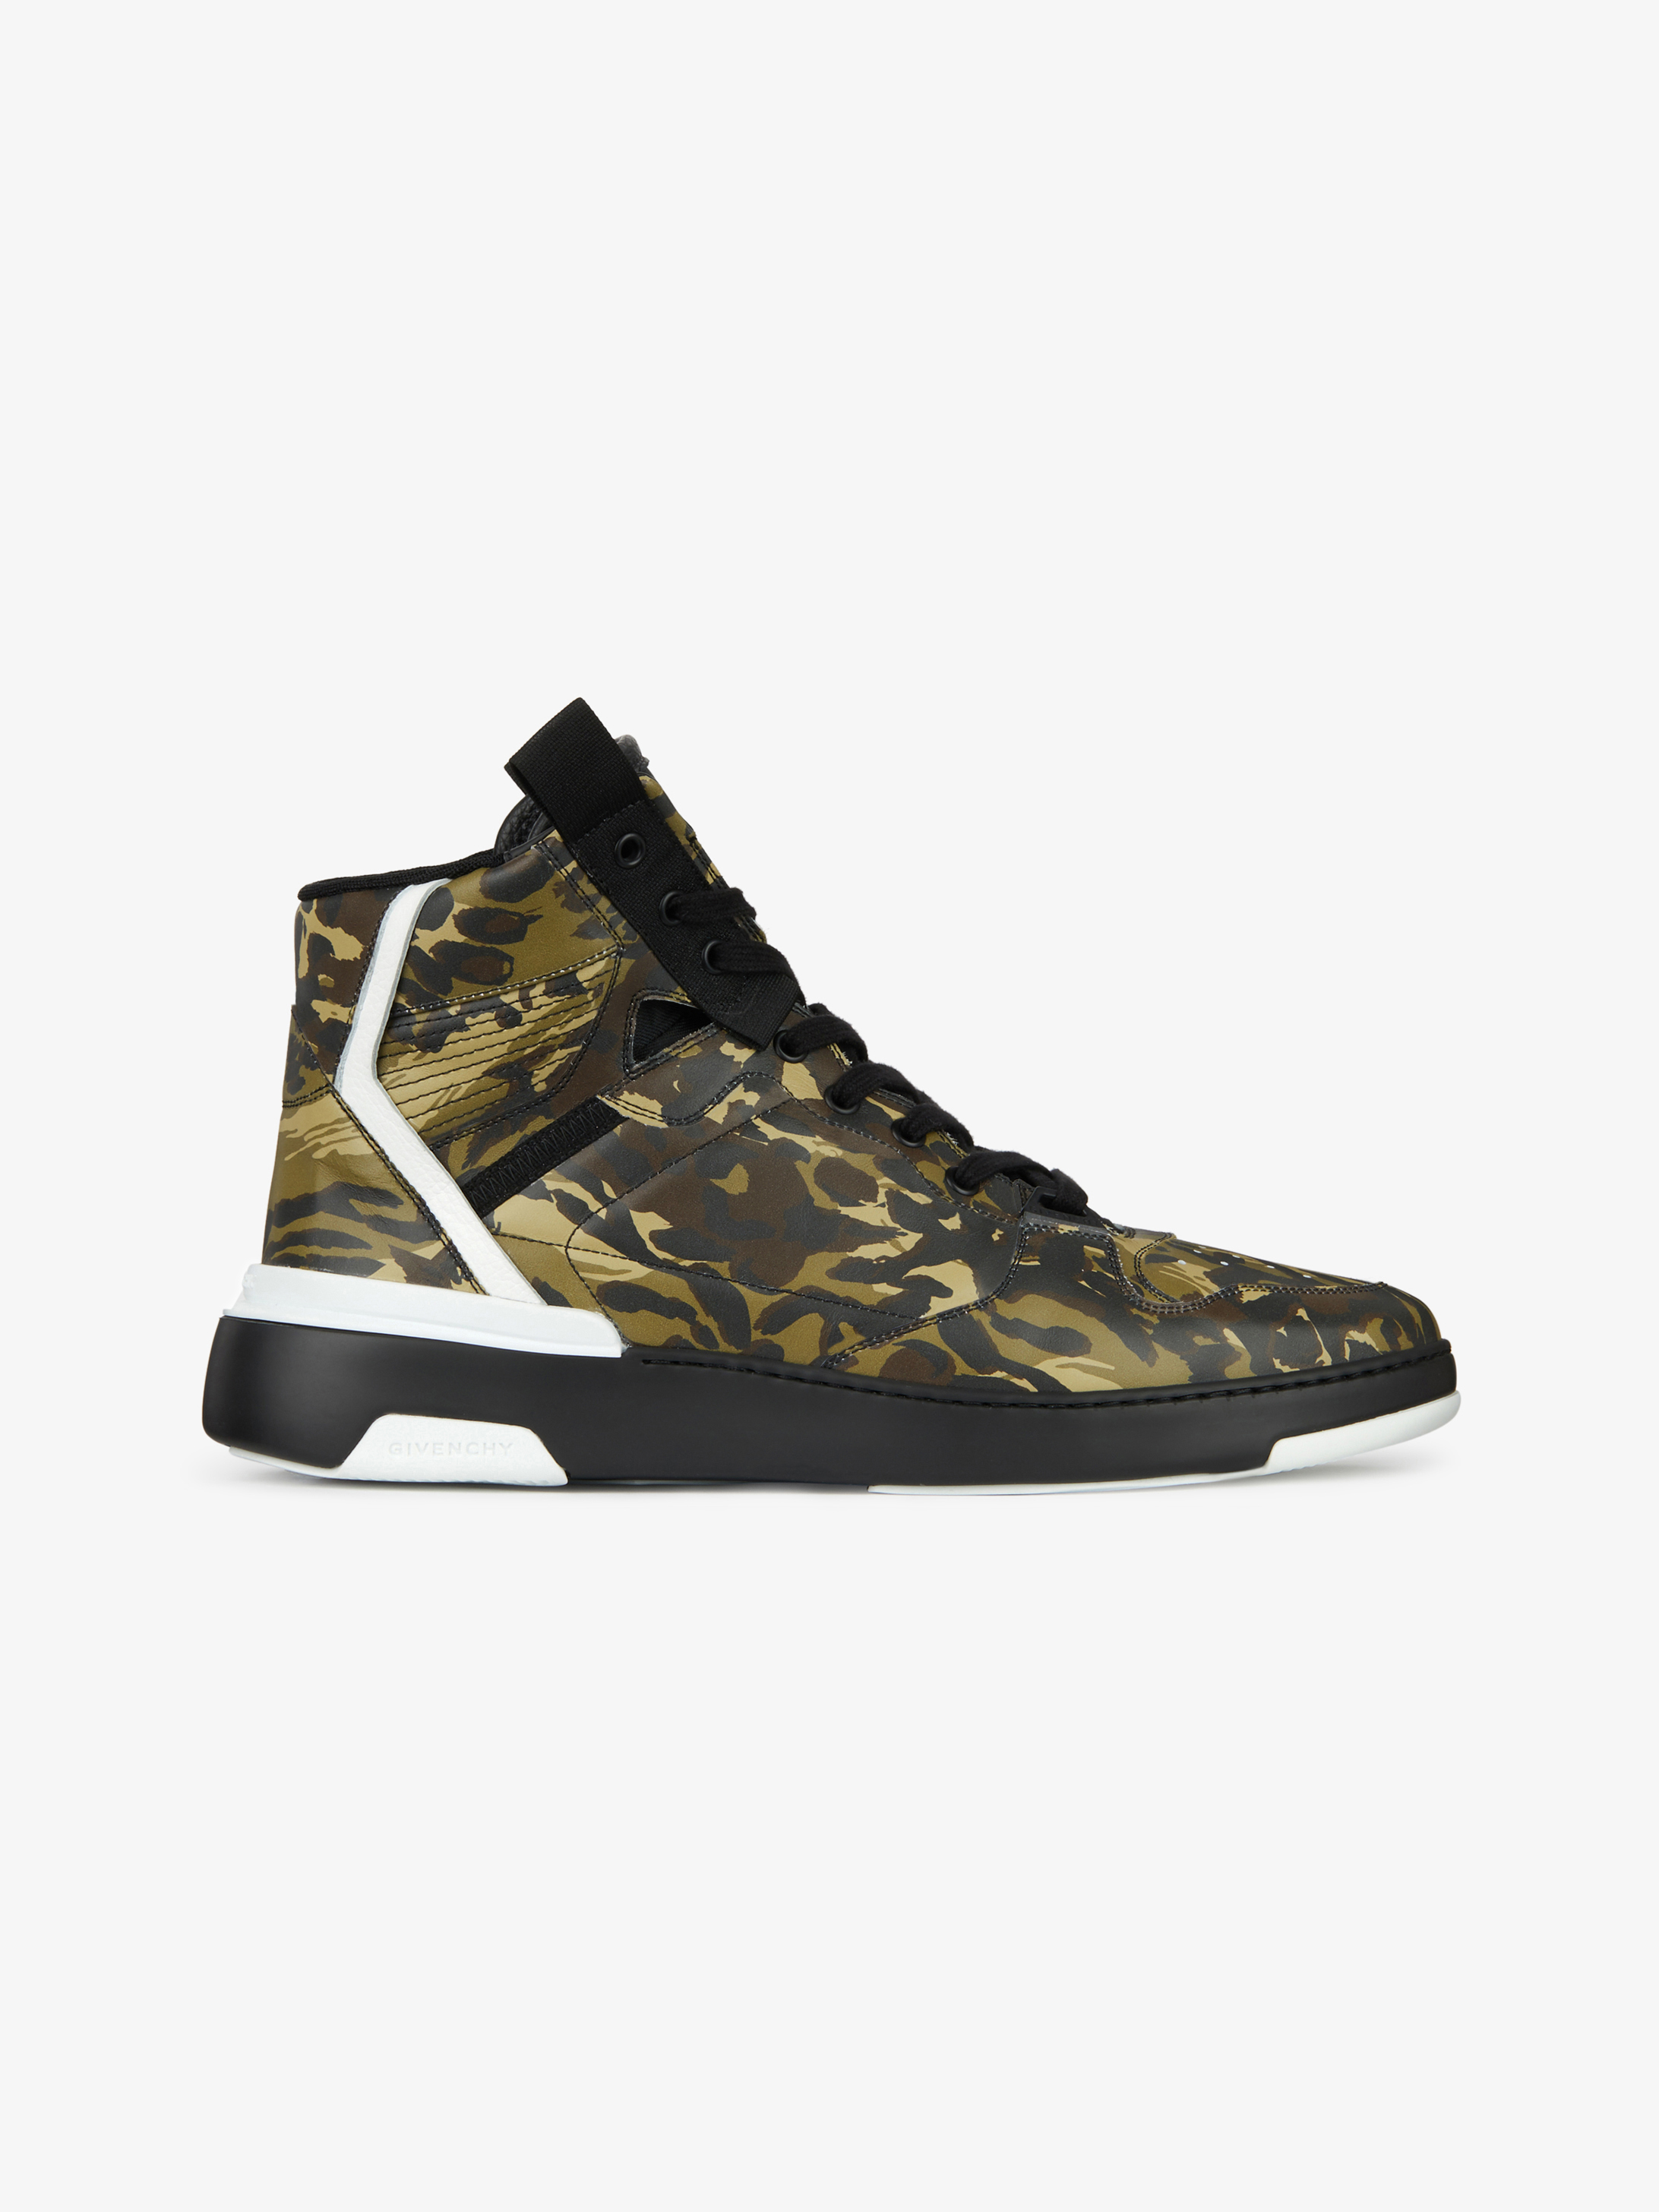 WING high sneakers in camo leather